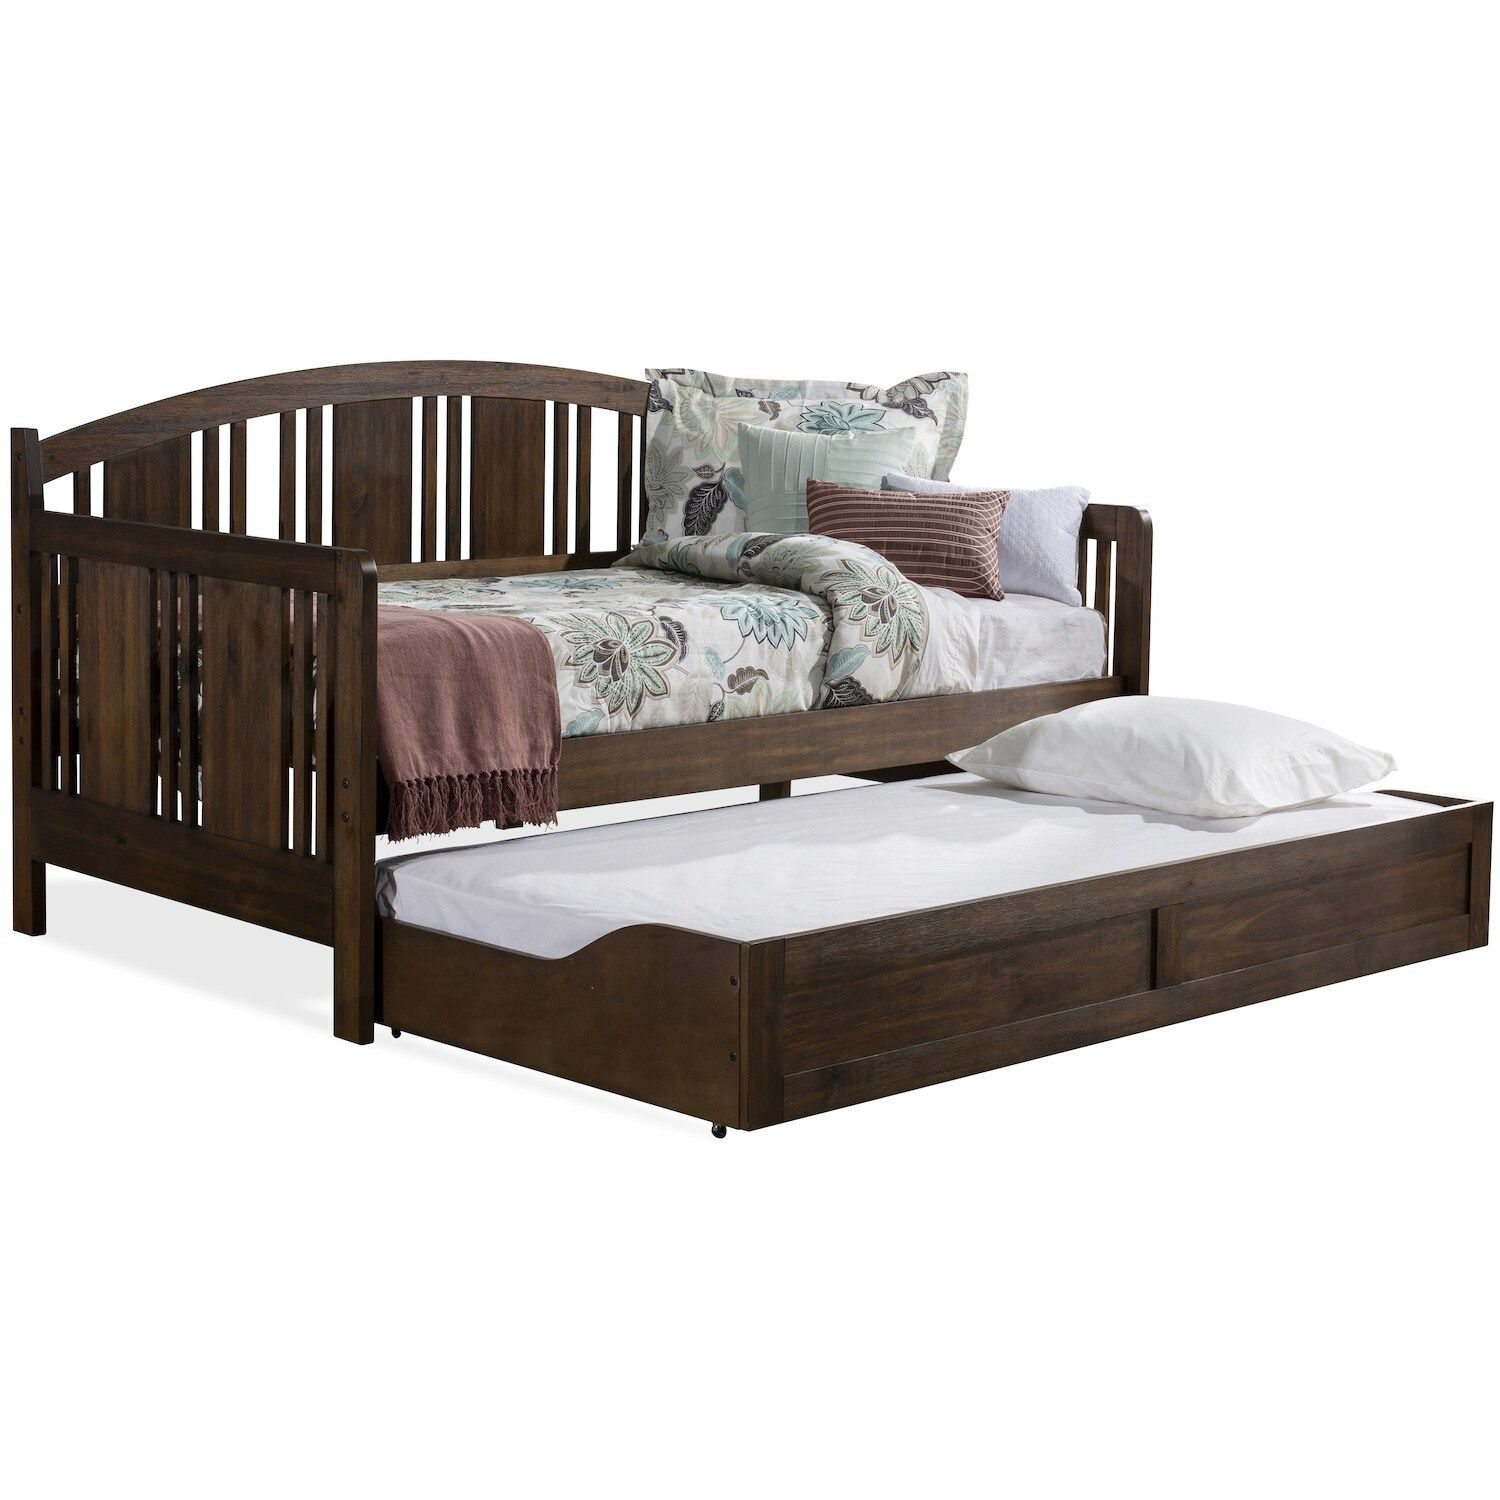 Hillsdale Furniture Dana Daybed With Trundle Affiliate Furniture Sponsored Hillsdale